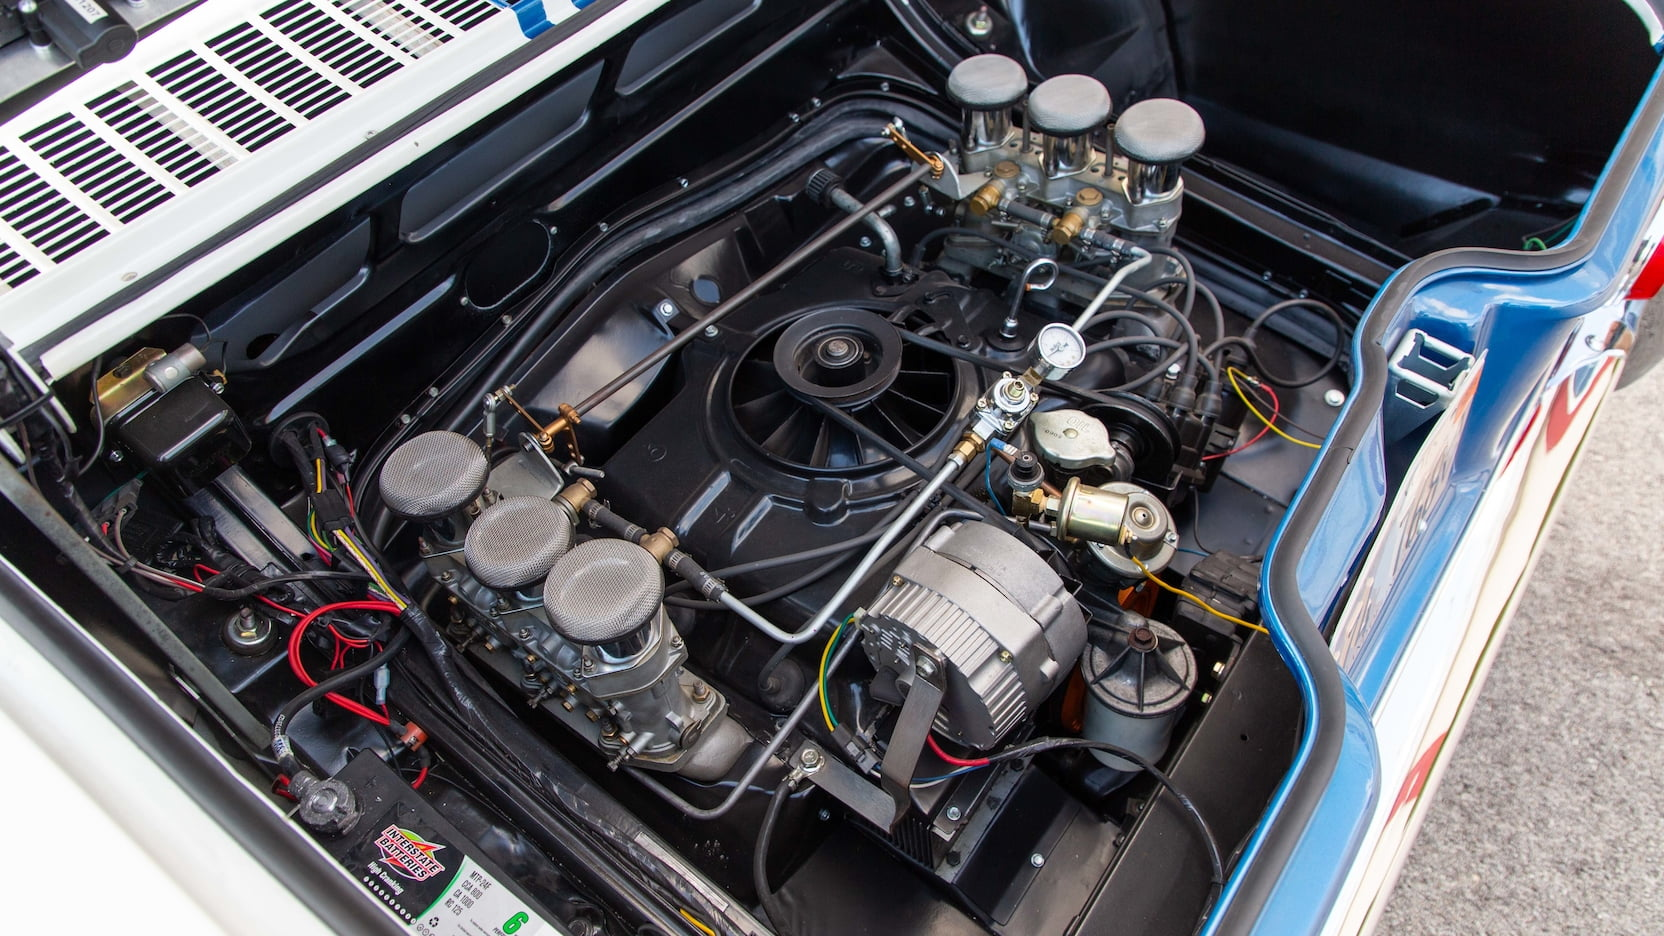 1966 Chevrolet Yenko Stinger engine